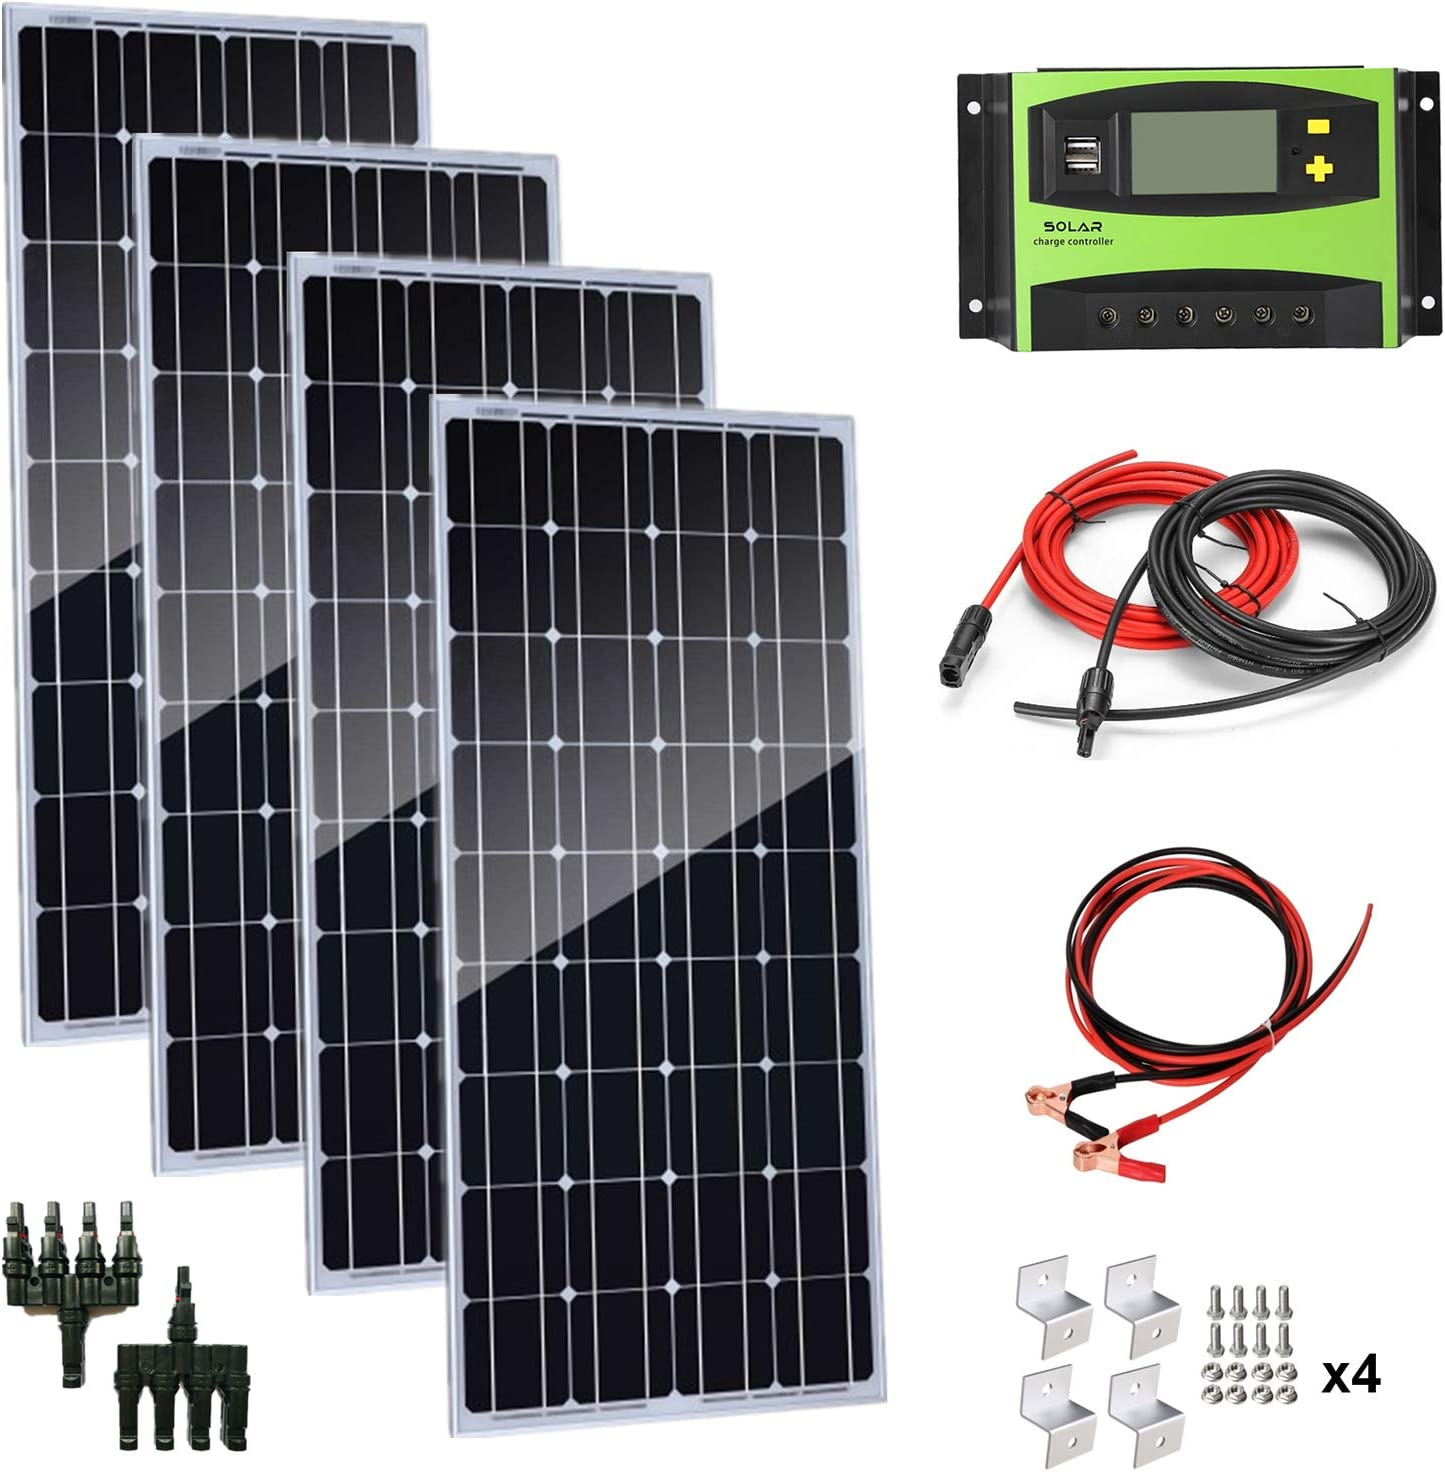 AUECOOR 400 Watt 18 Volt 12 Volt Solar Panel Monocrystalline Solar Bundle Kit, Solar Charging System with 40A LCD Solar Controller for RV, Boat,Motorhome,Marine Off Grid System 12V Battery